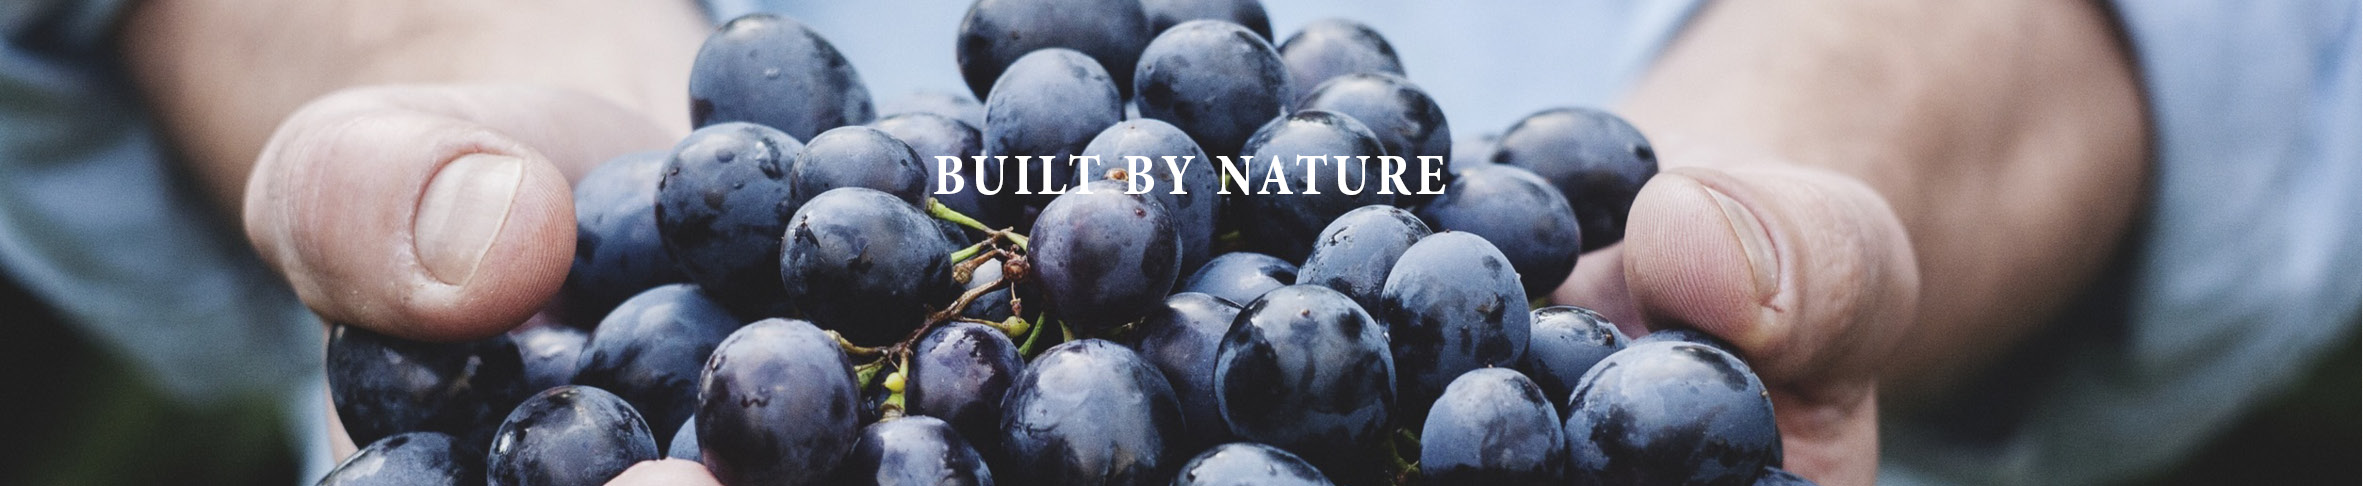 built by nature gross